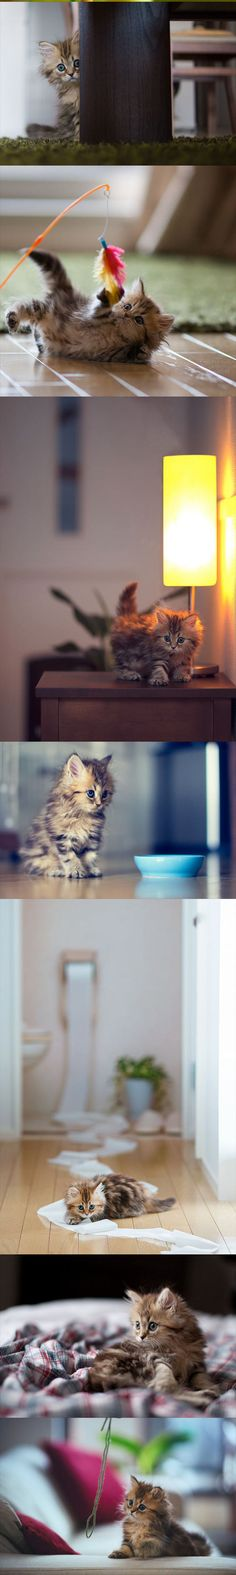 Funny pictures of the day (76 pics) I want this kitten :( he is so adorable